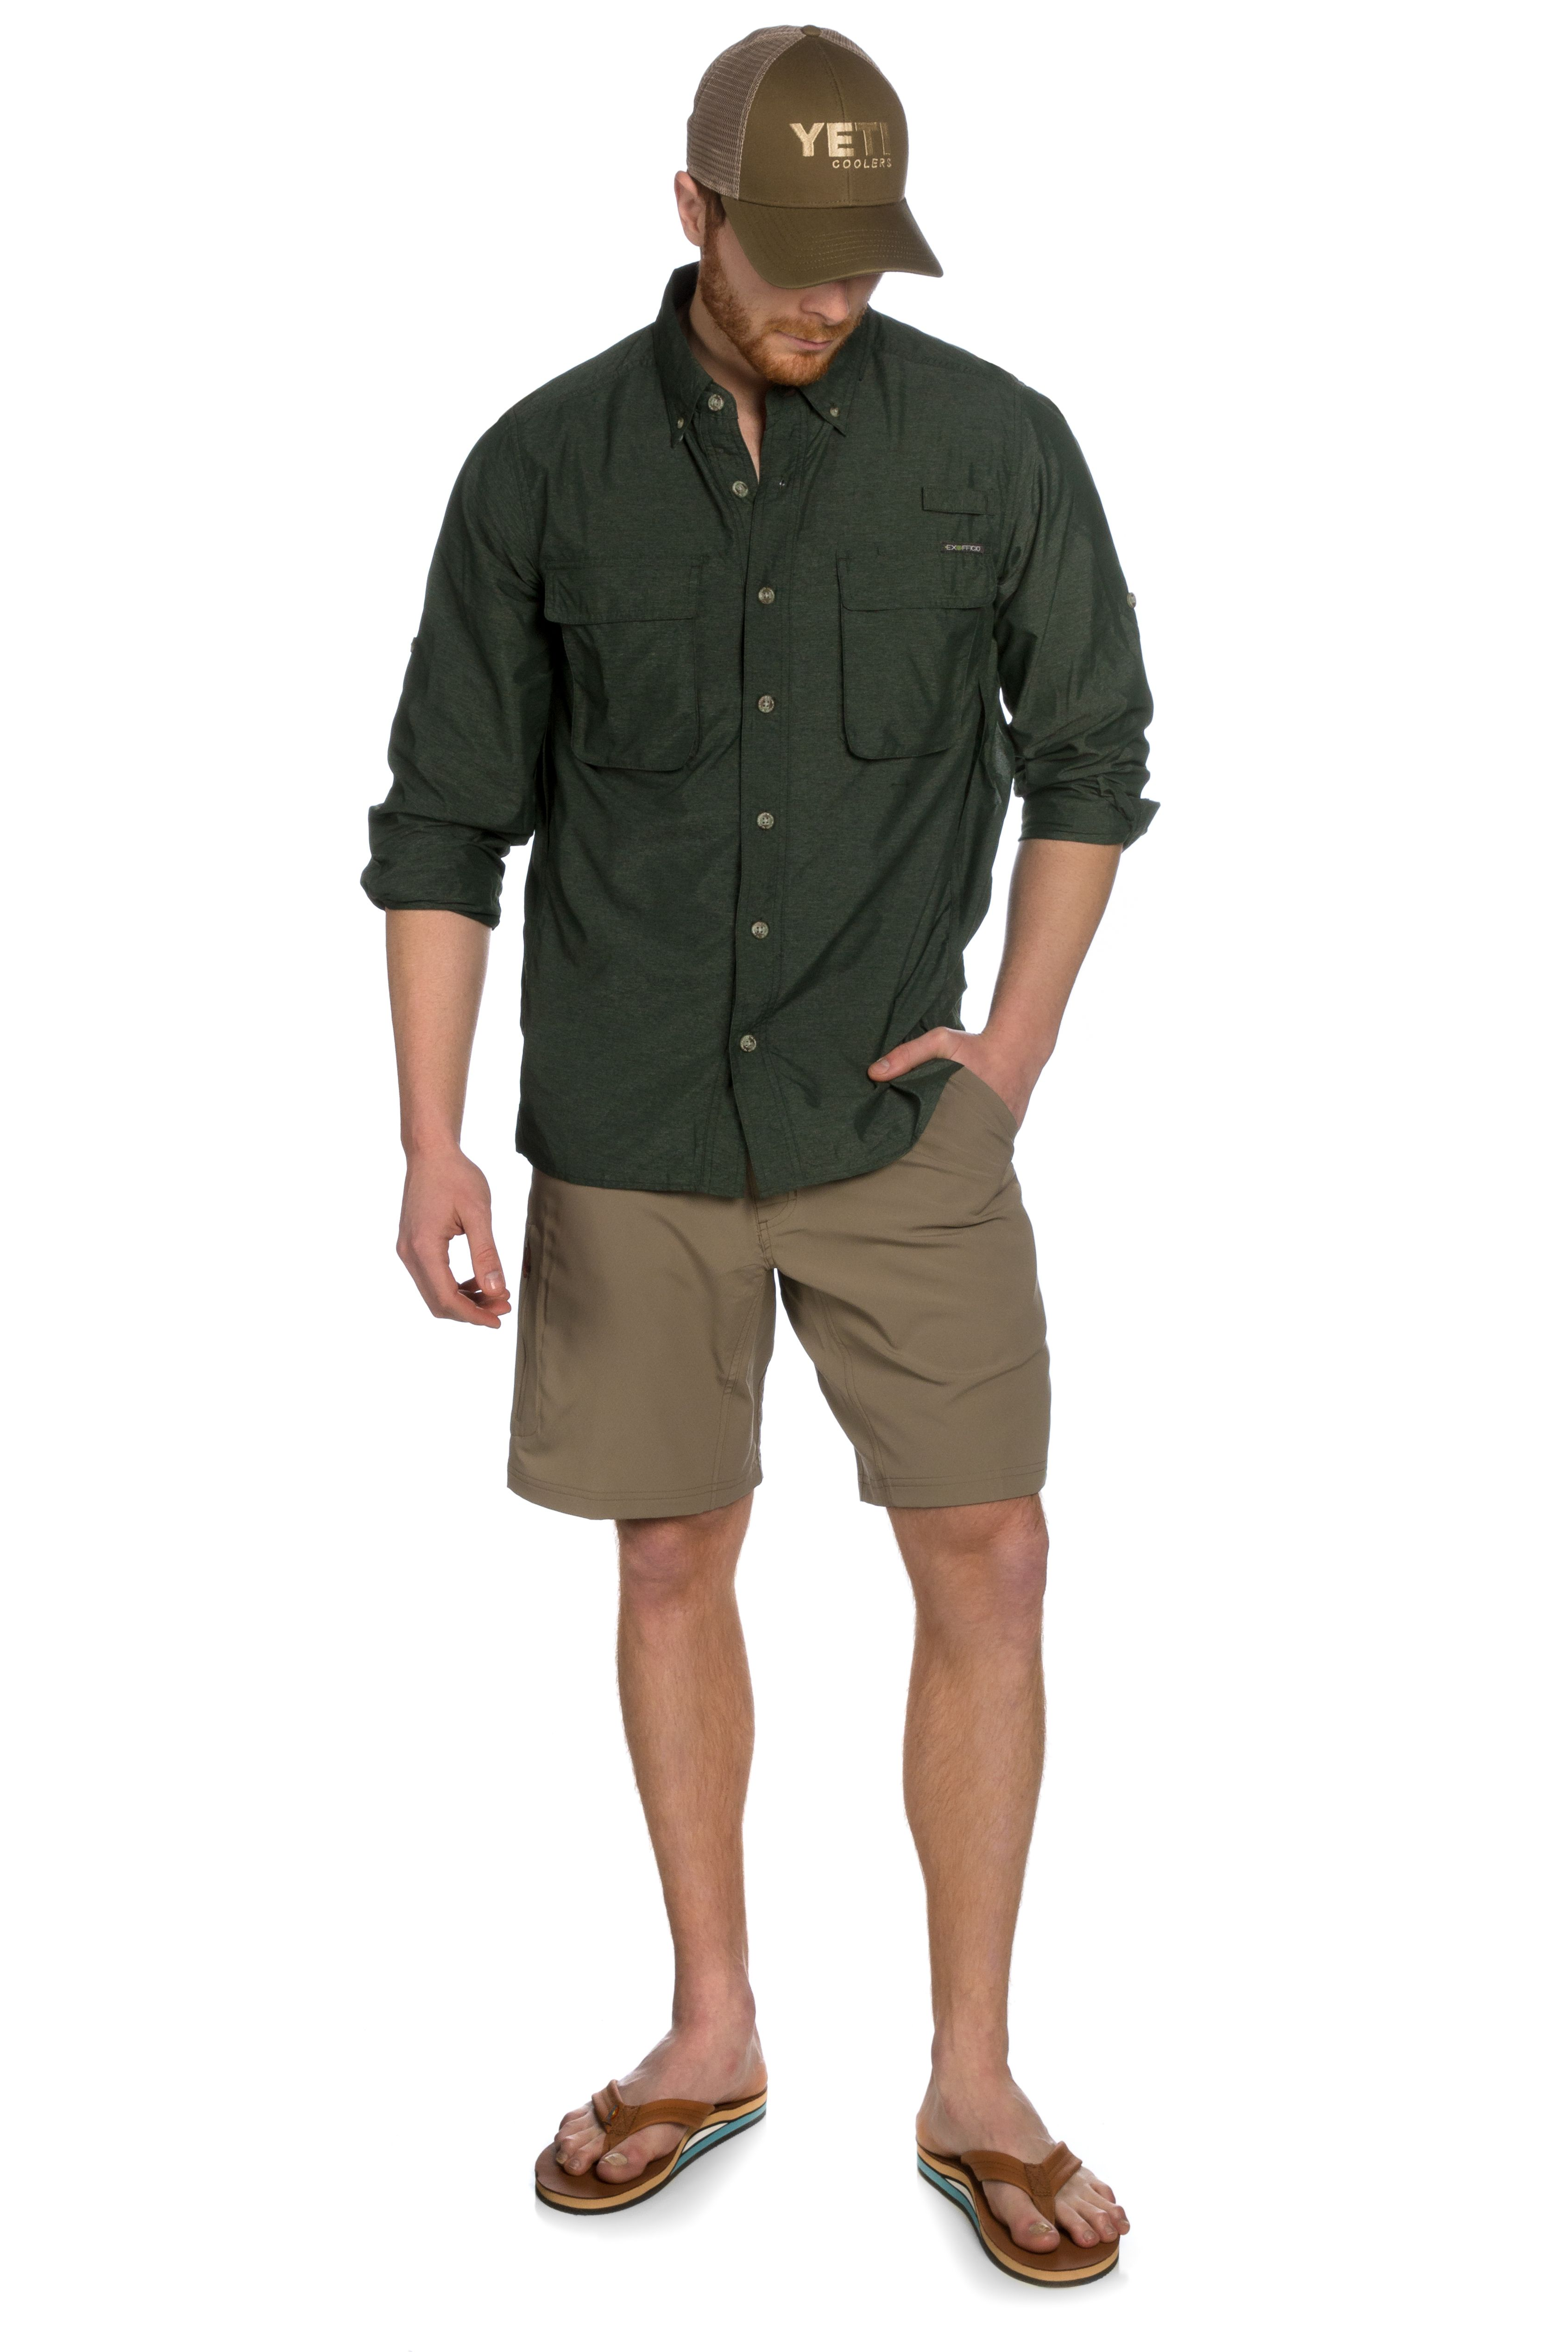 bcdc3cebdcec This outfit consists of Simms Skiff Mens Hybrid Shorts